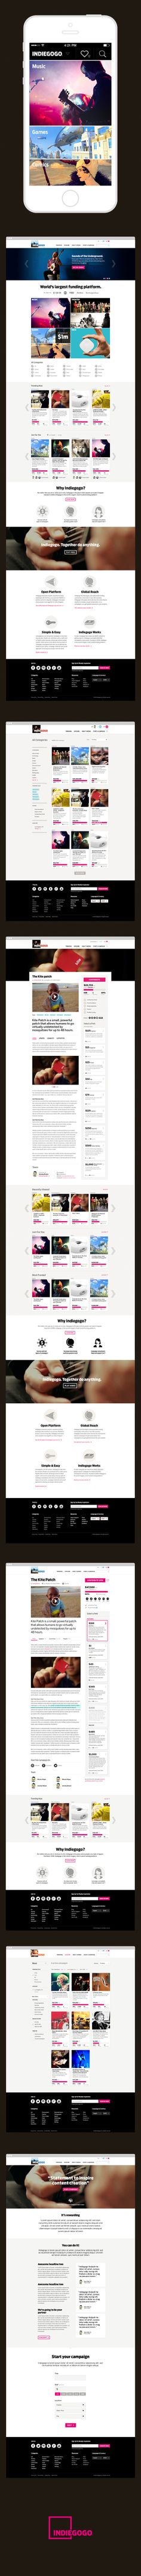 Indiegogo by Moosesyrup, via Behance